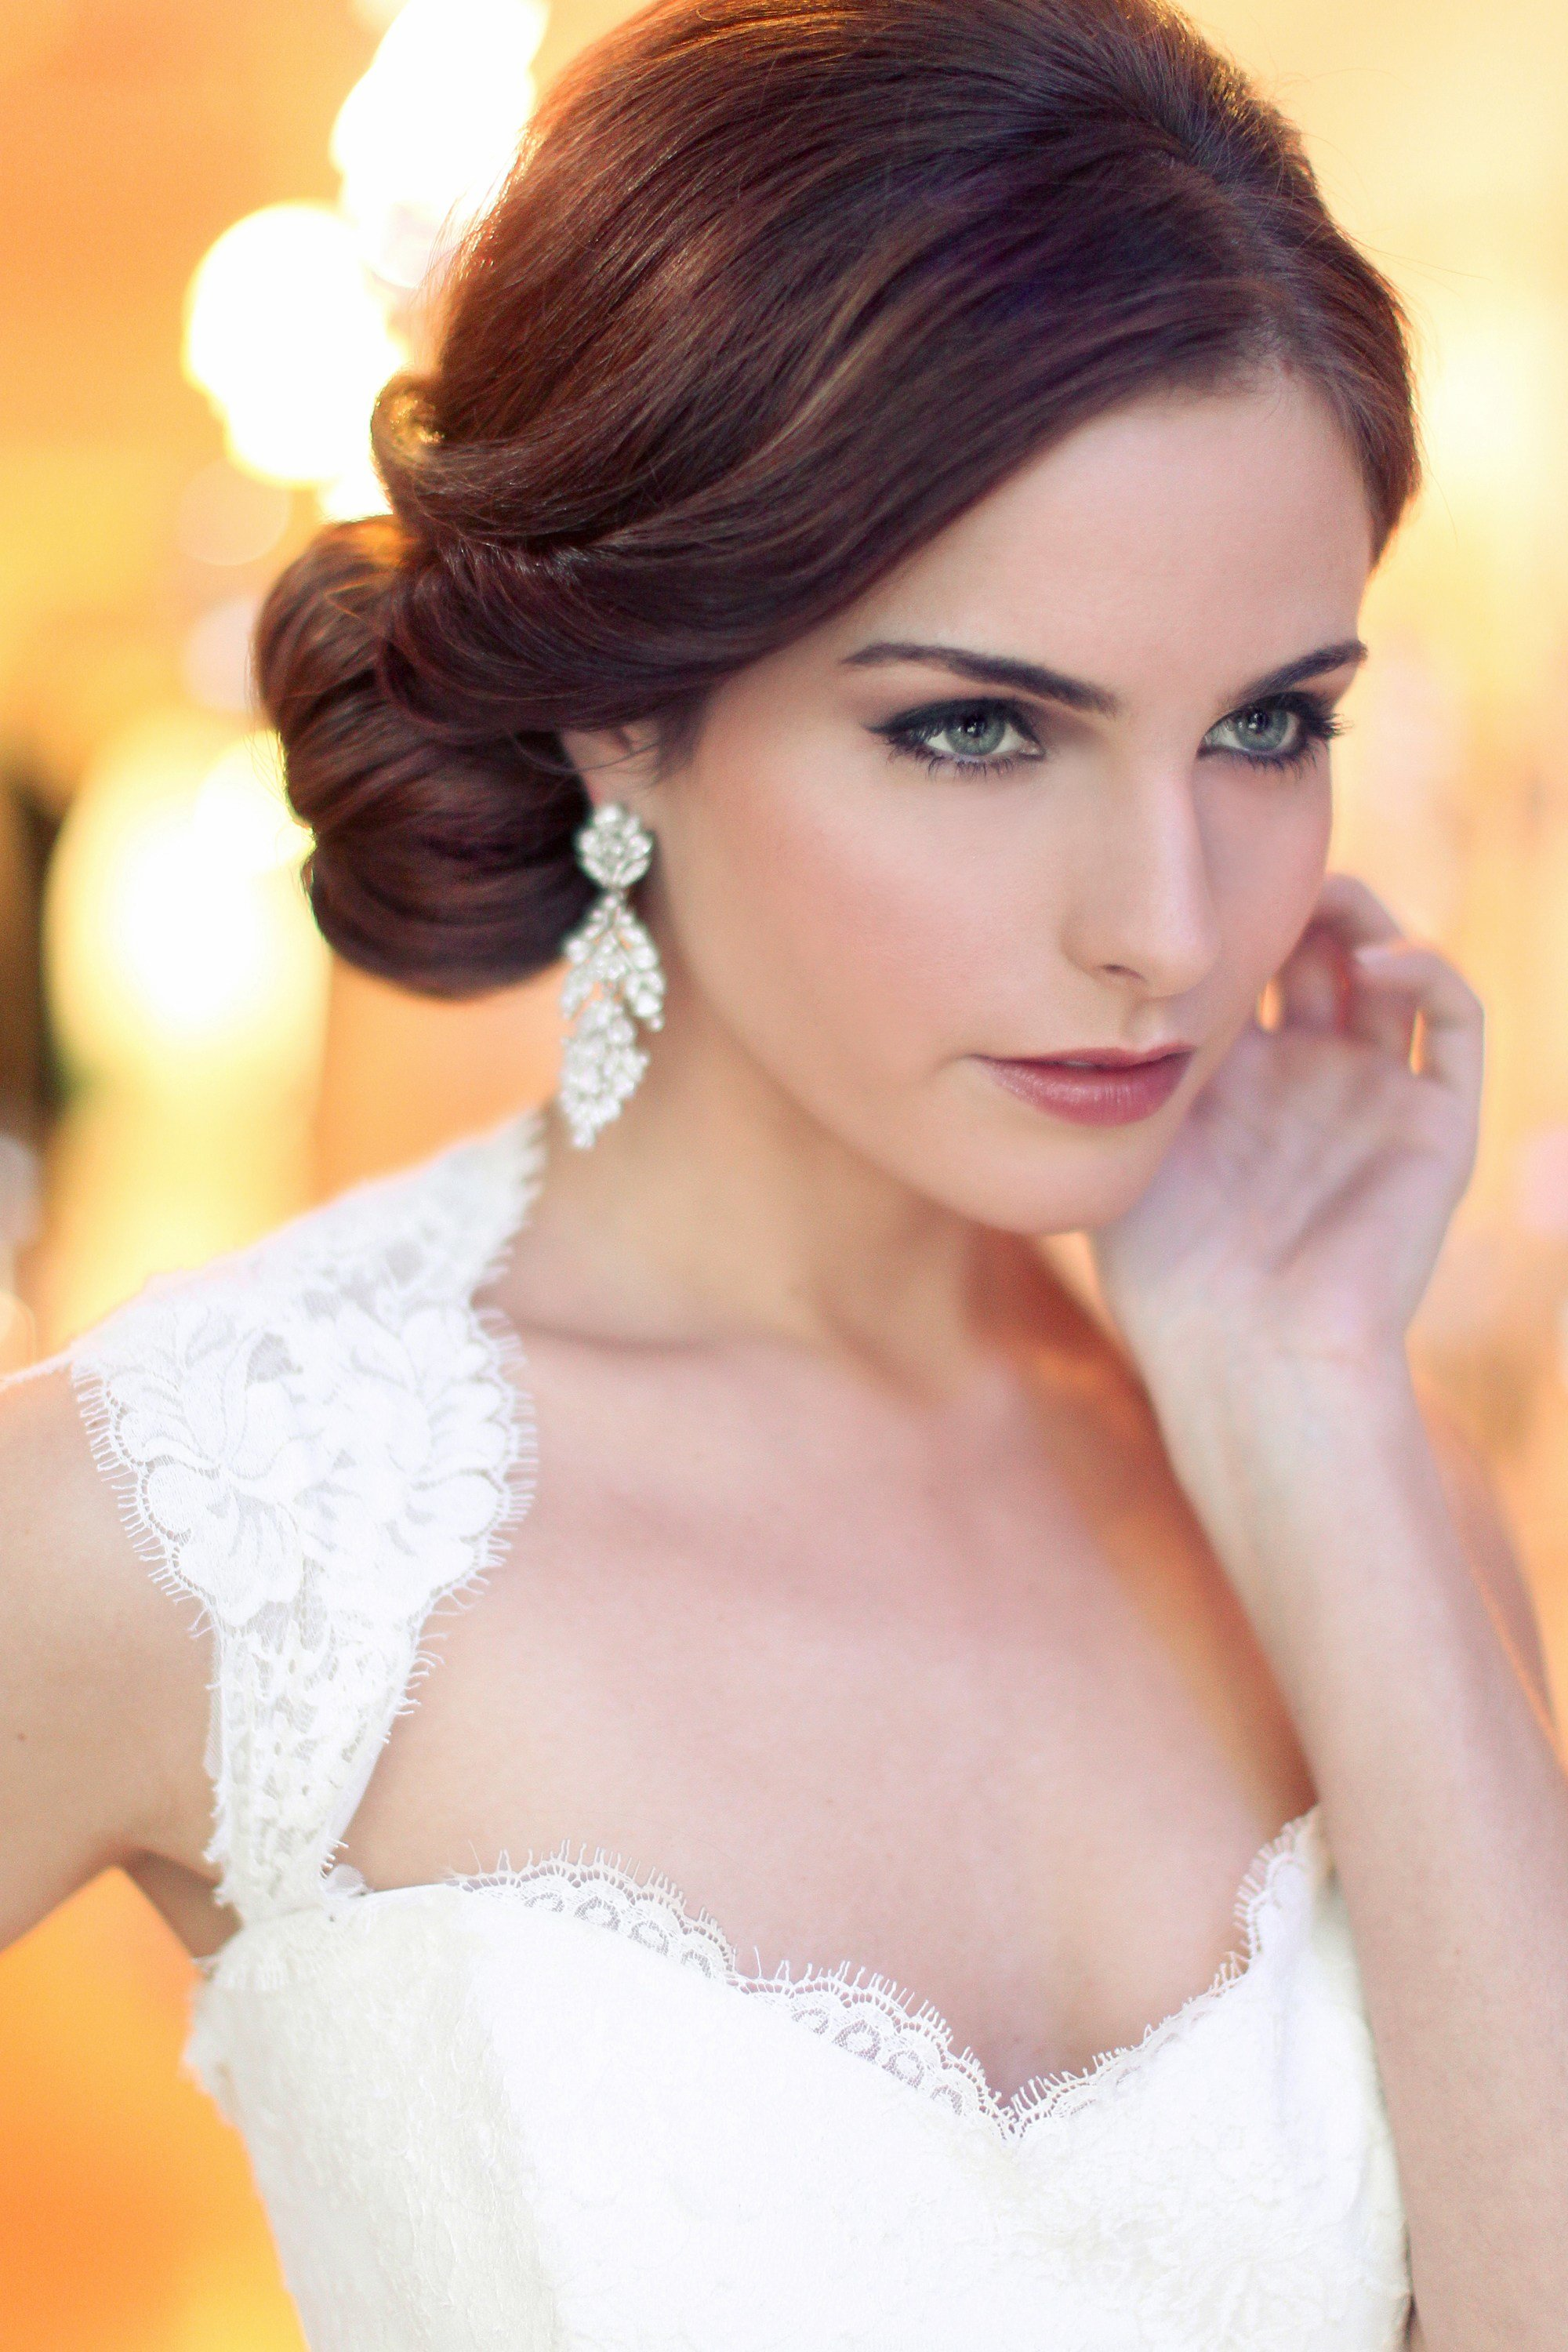 New Wedding Hairstyles Ideas With Pictures